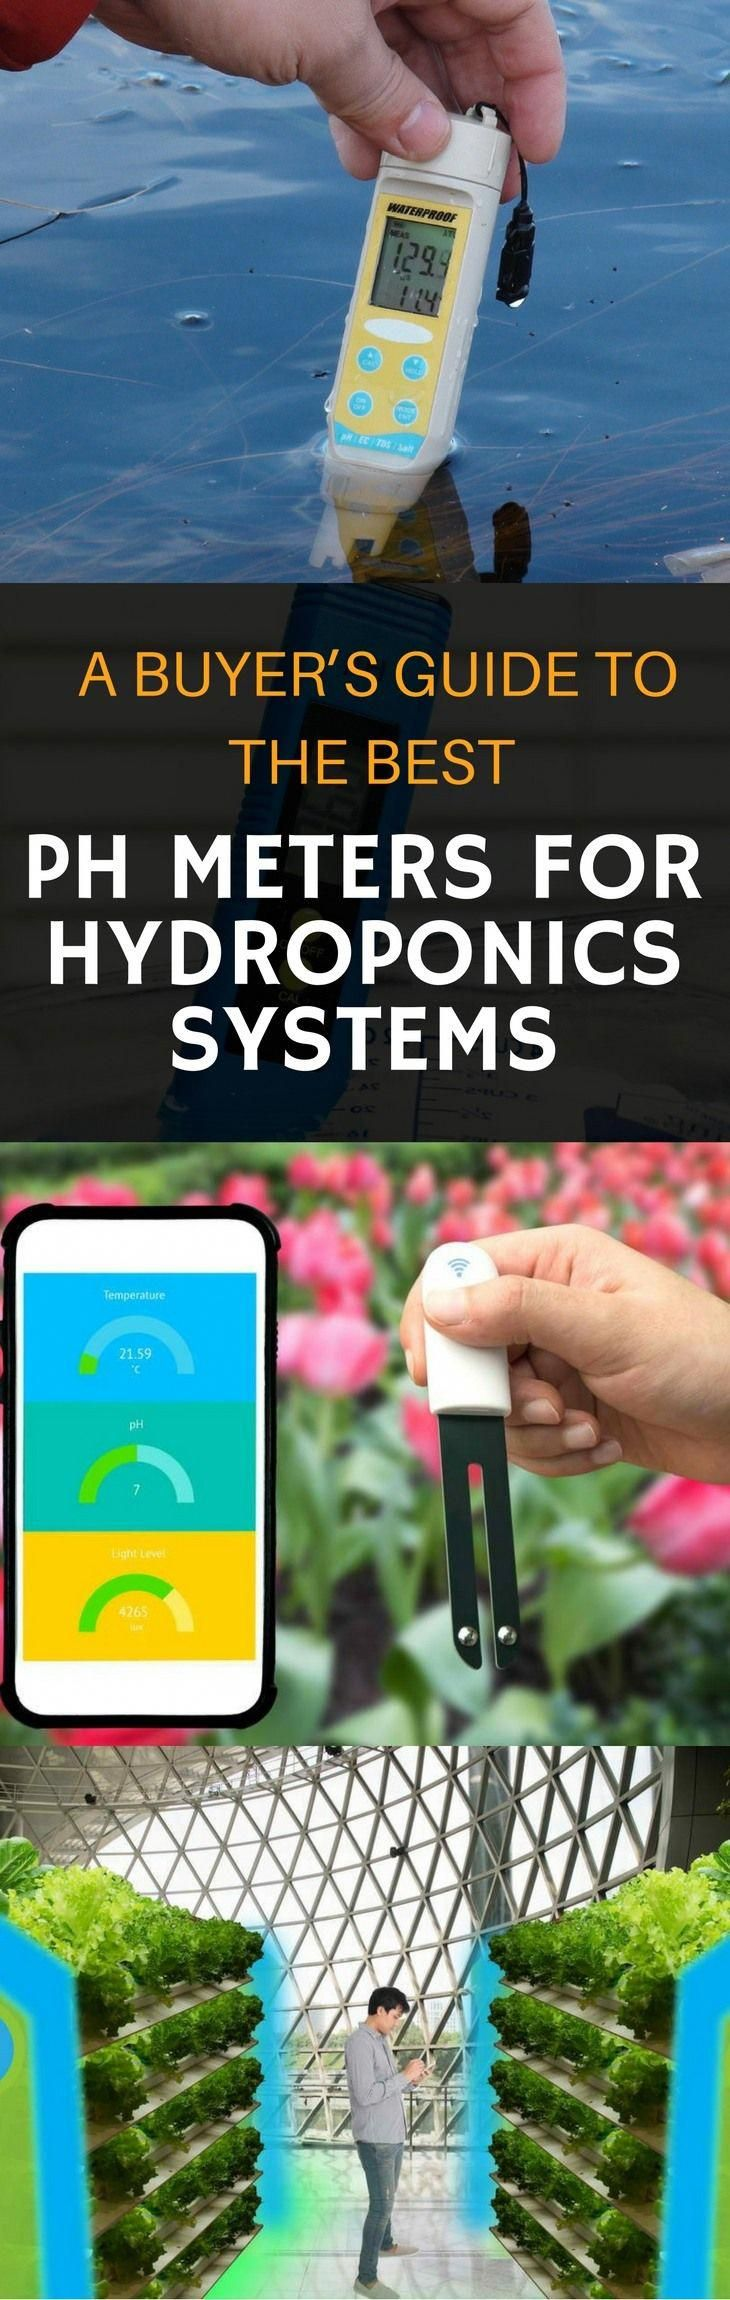 Best pH Meters For Hydroponics Systems 2018 Reviews